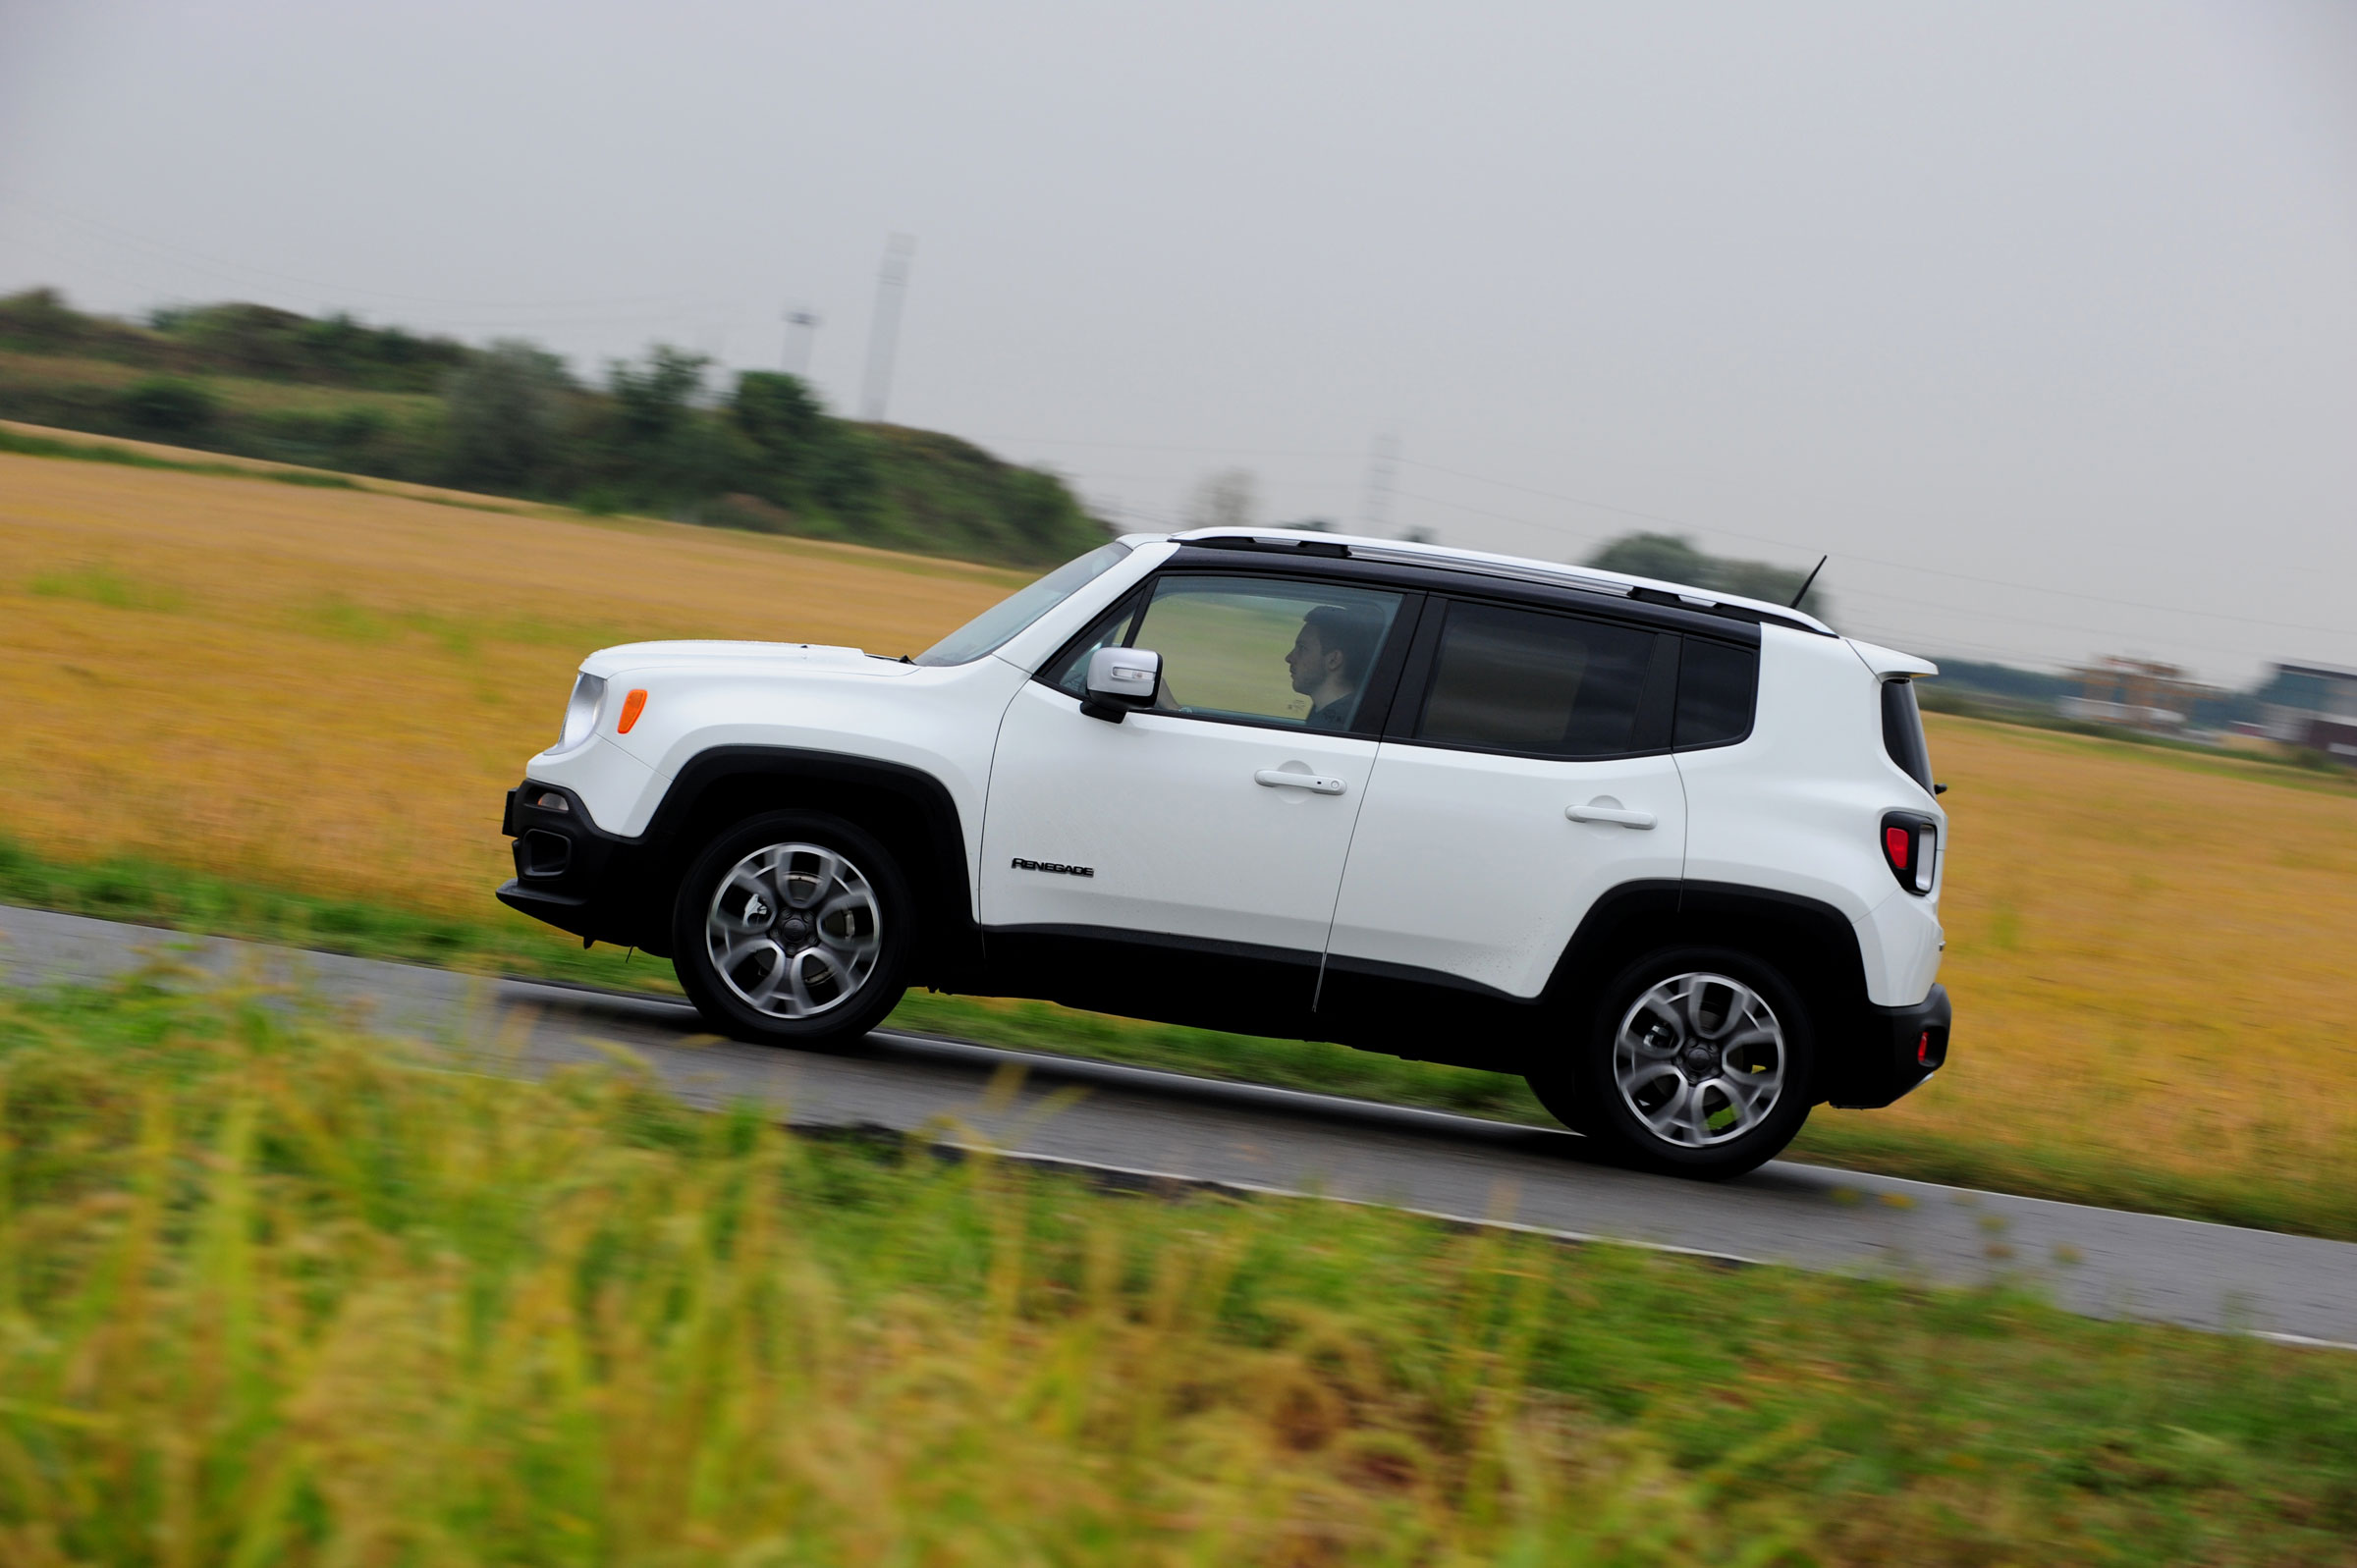 Jeep Renegade 2015 — фотогалерея